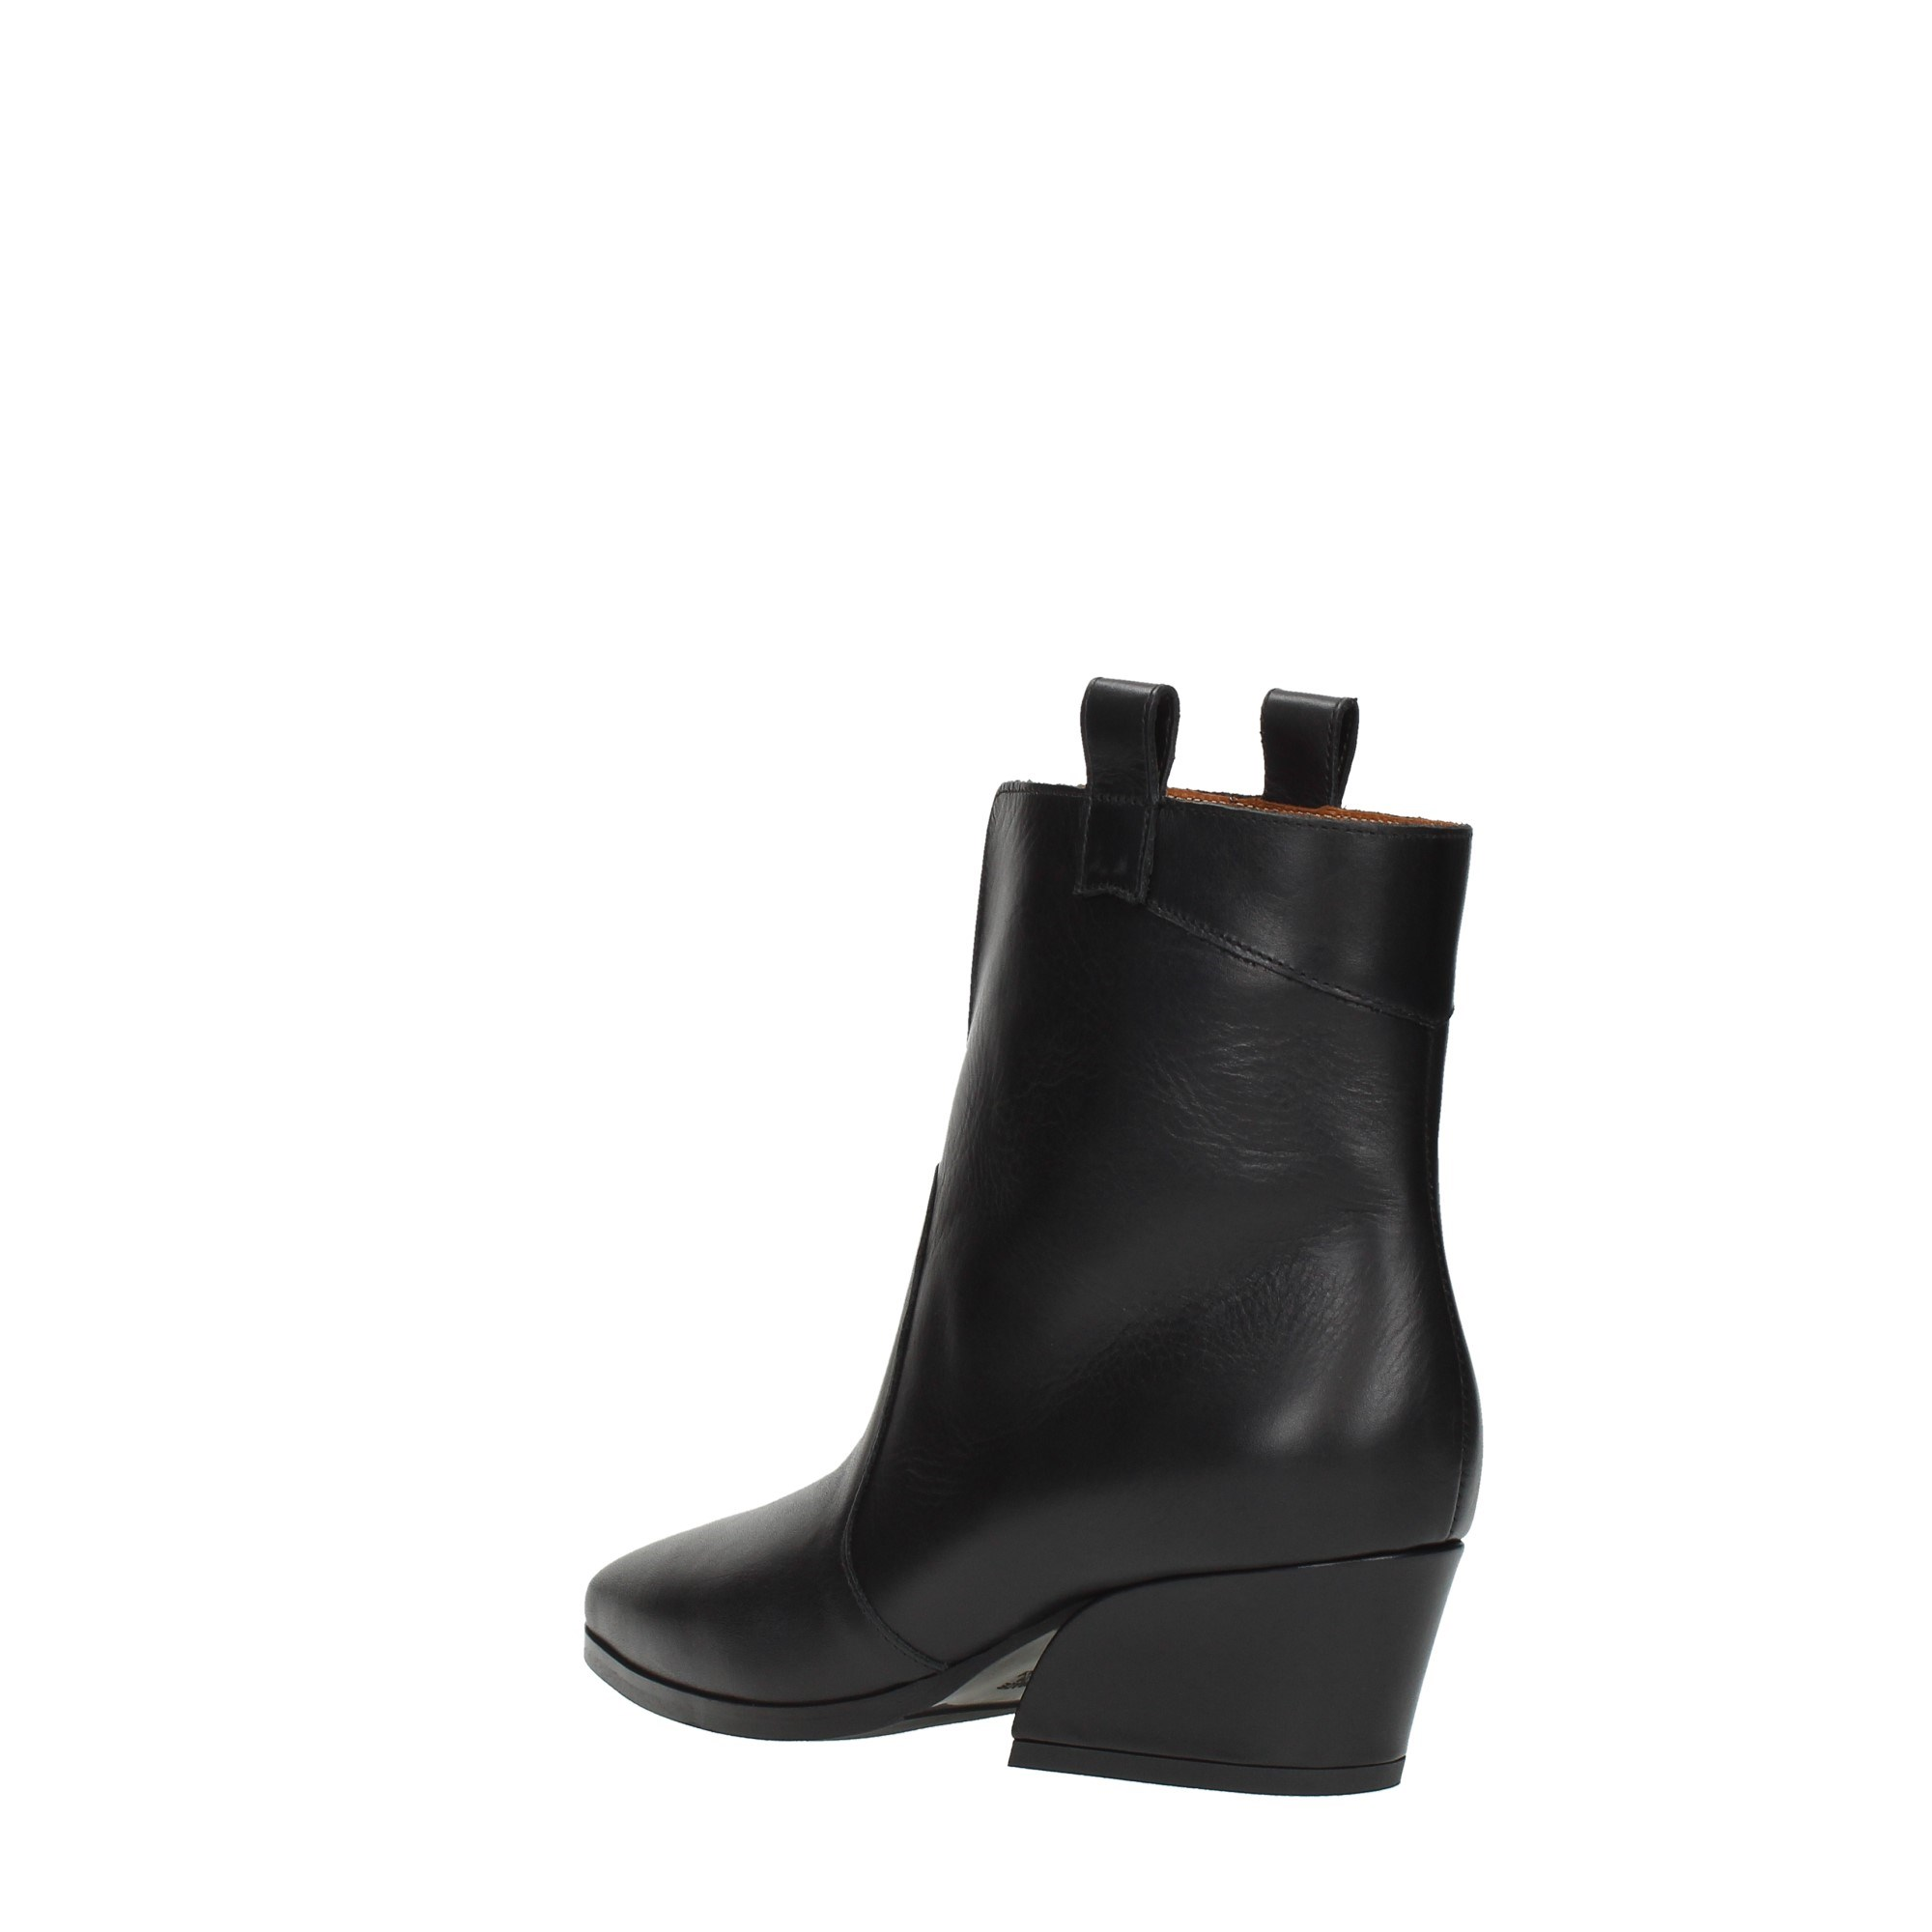 Lorenzo Mari Shoes Women Booties Black 1807